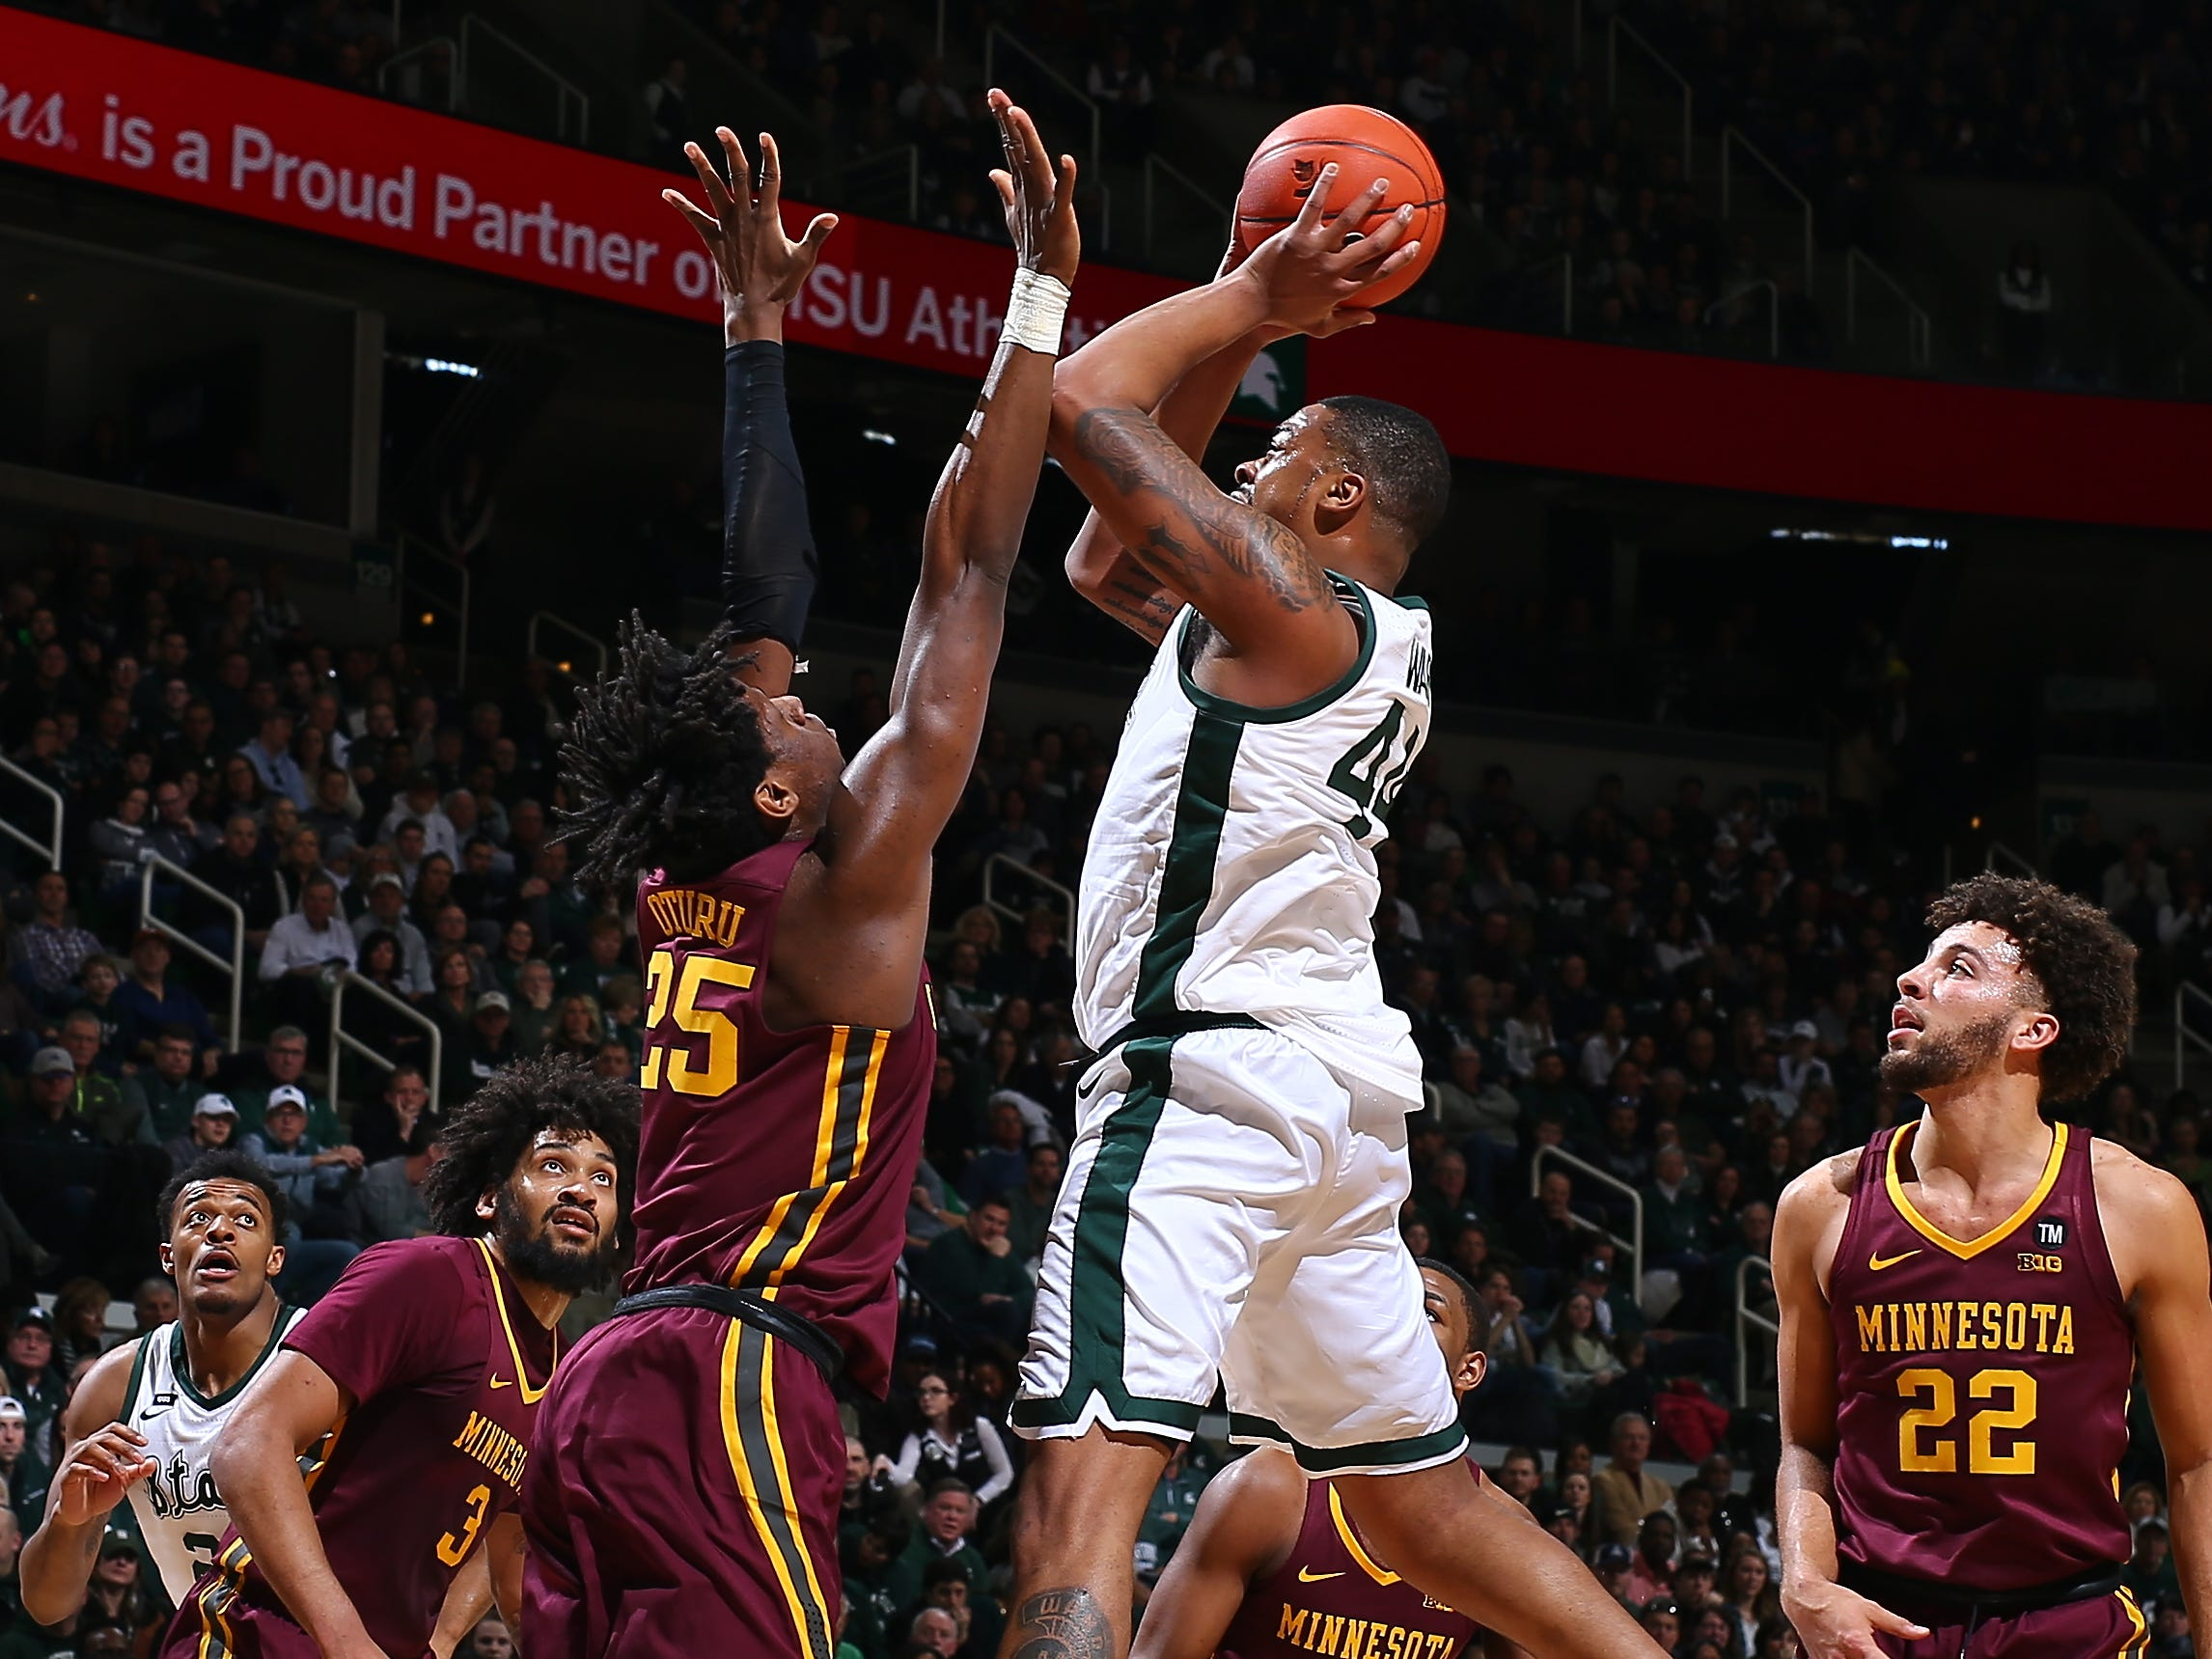 Michigan State's Nick Ward shoots the ball over Minnesota's Daniel Oturu in the first half at Breslin Center on Saturday, Feb. 9, 2019, in East Lansing.